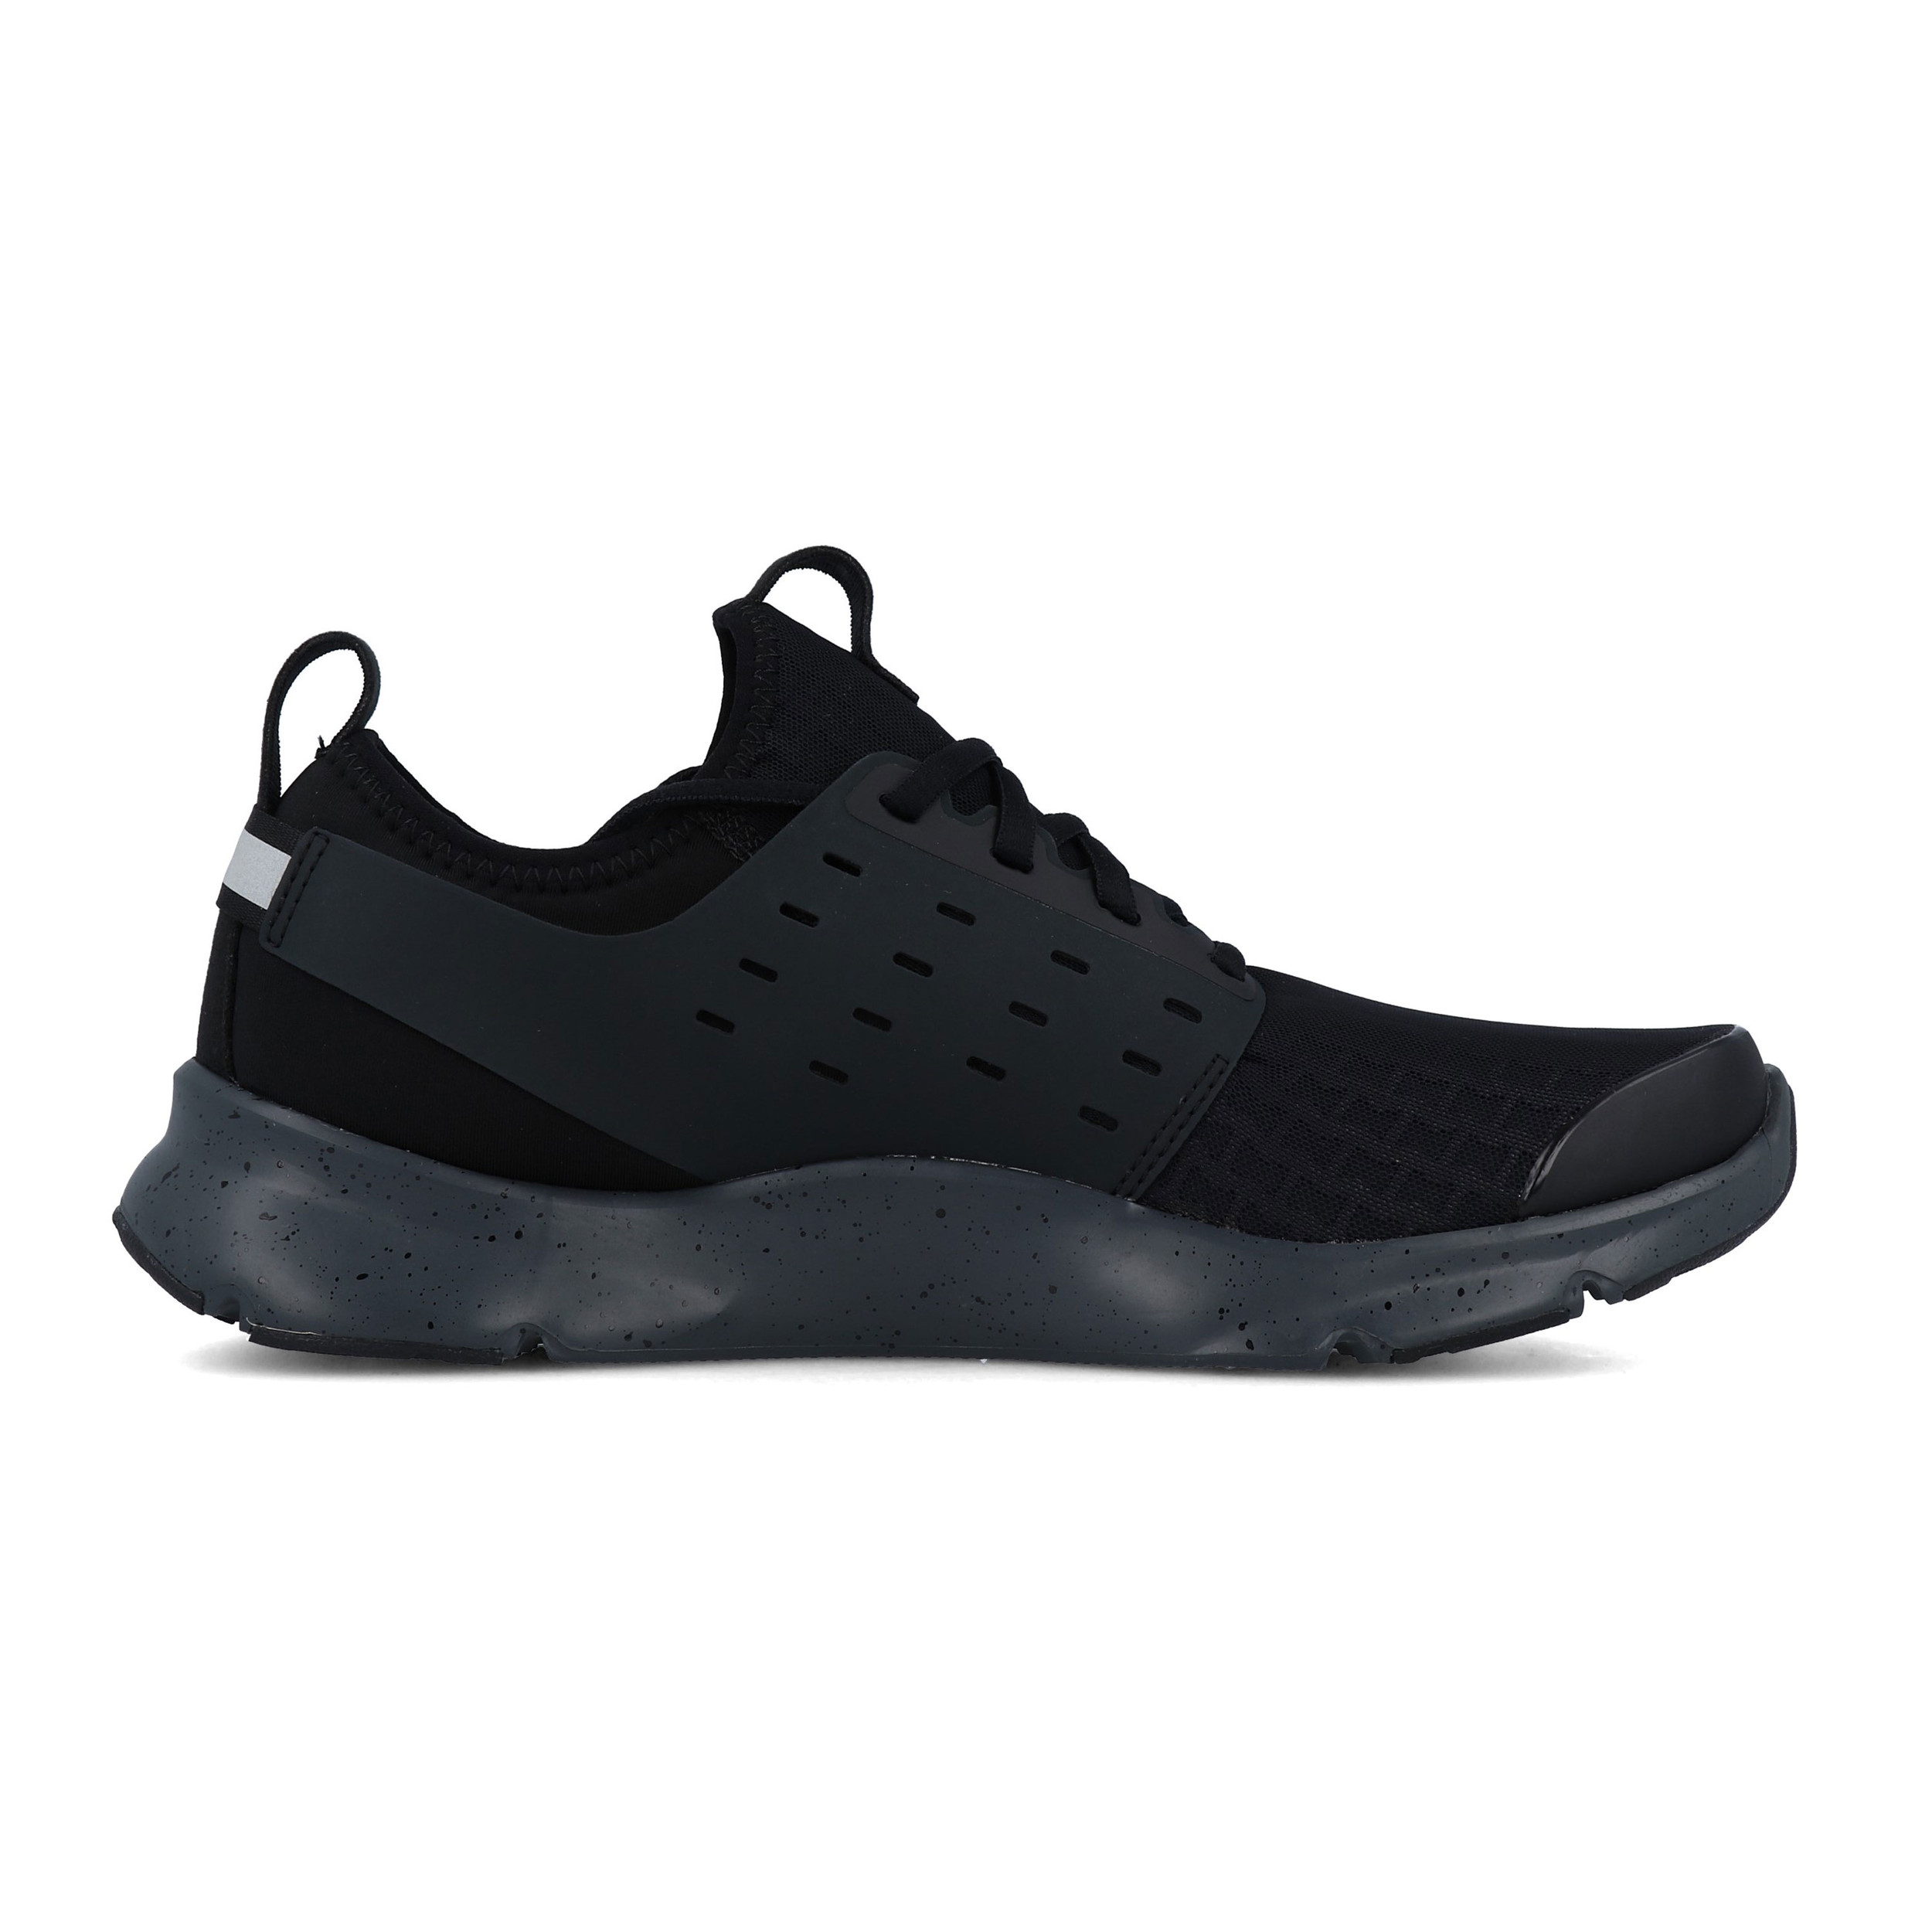 Armour-Para-Hombre-Negro-Drift-correr-Under-Shoes-Trainers-Deportes-Transpirable miniatura 6